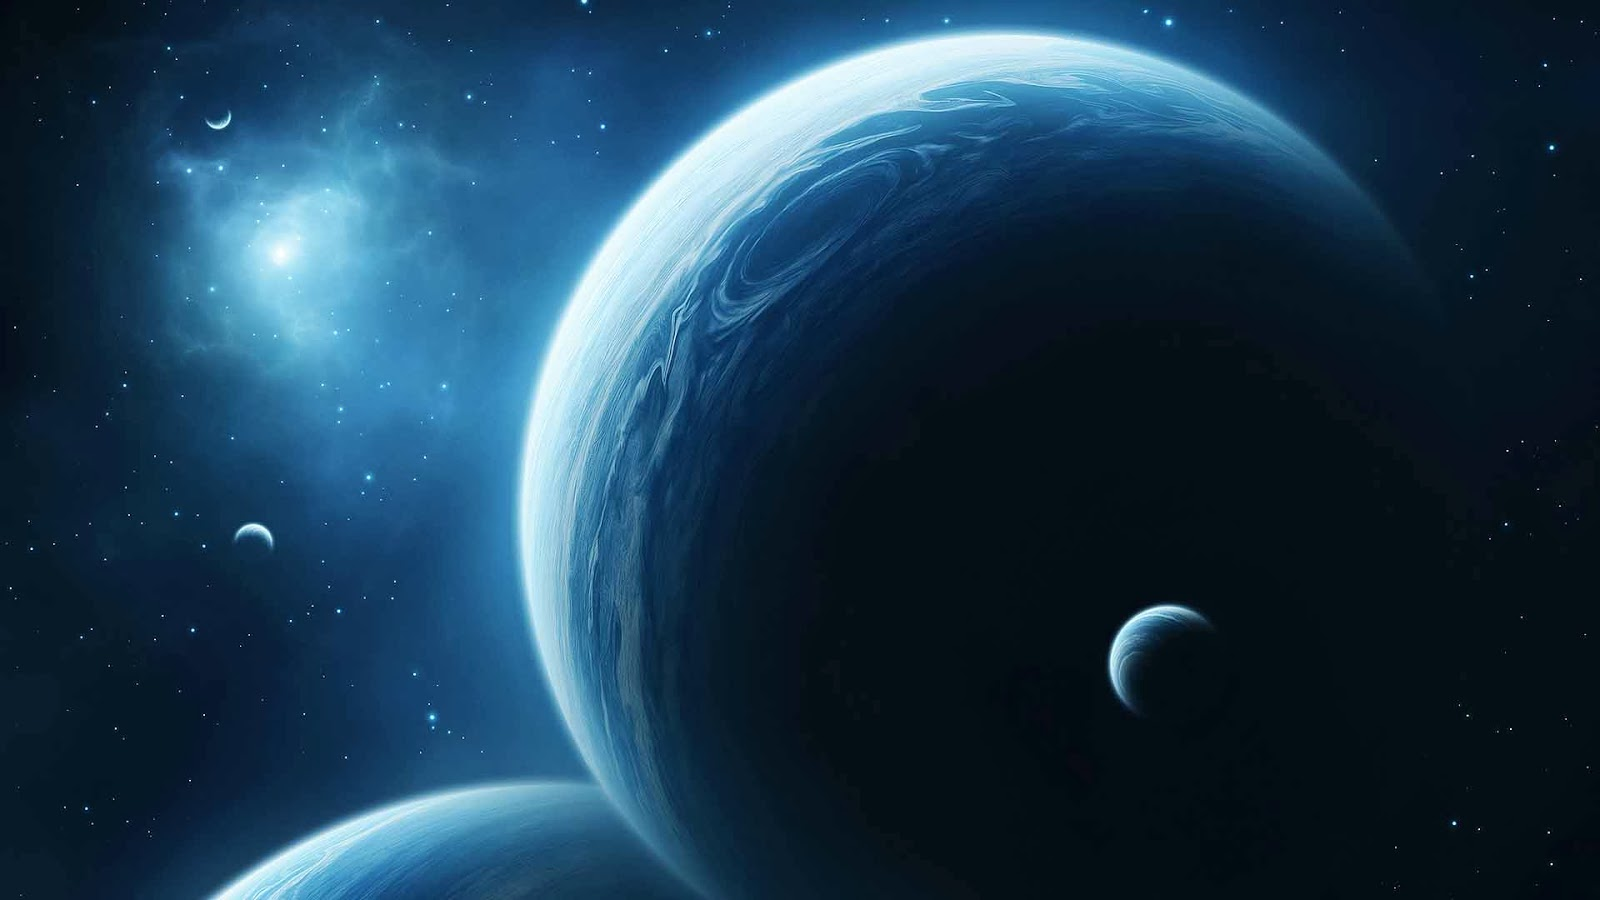 Hd Wallpapers Blog: Space Wallpapers 1920x1080